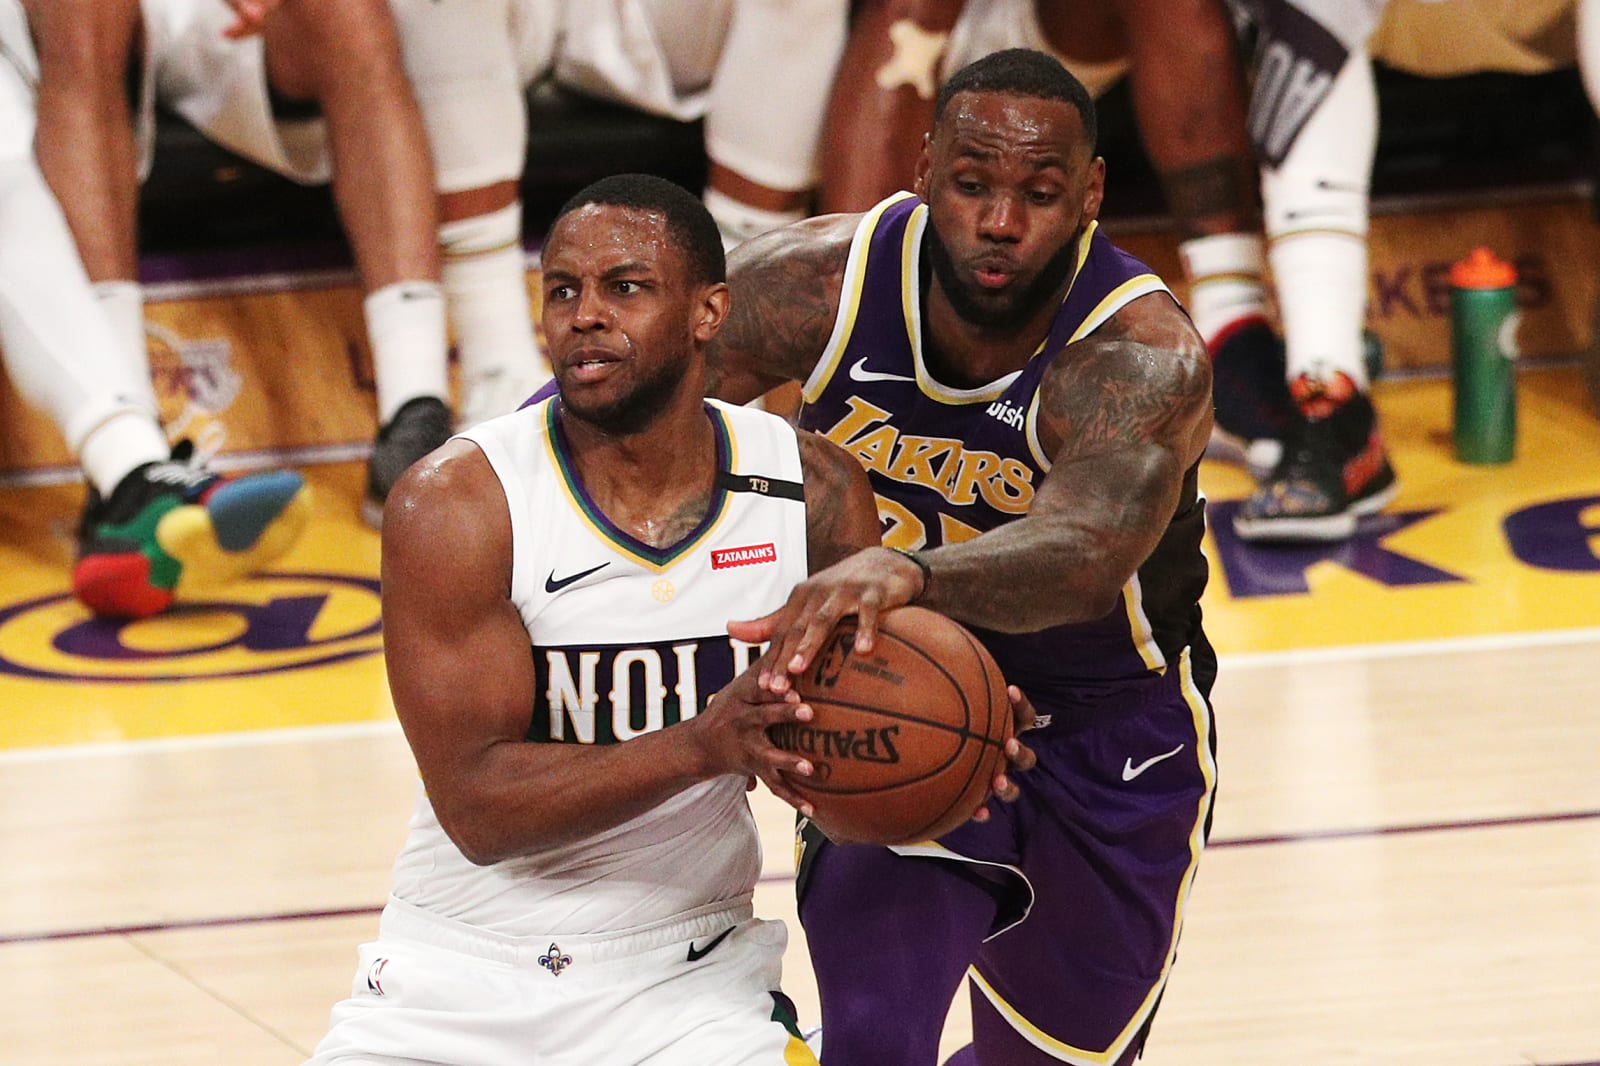 Los Angeles Lakers Vs New Orleans Pelicans 4 Players To Watch For